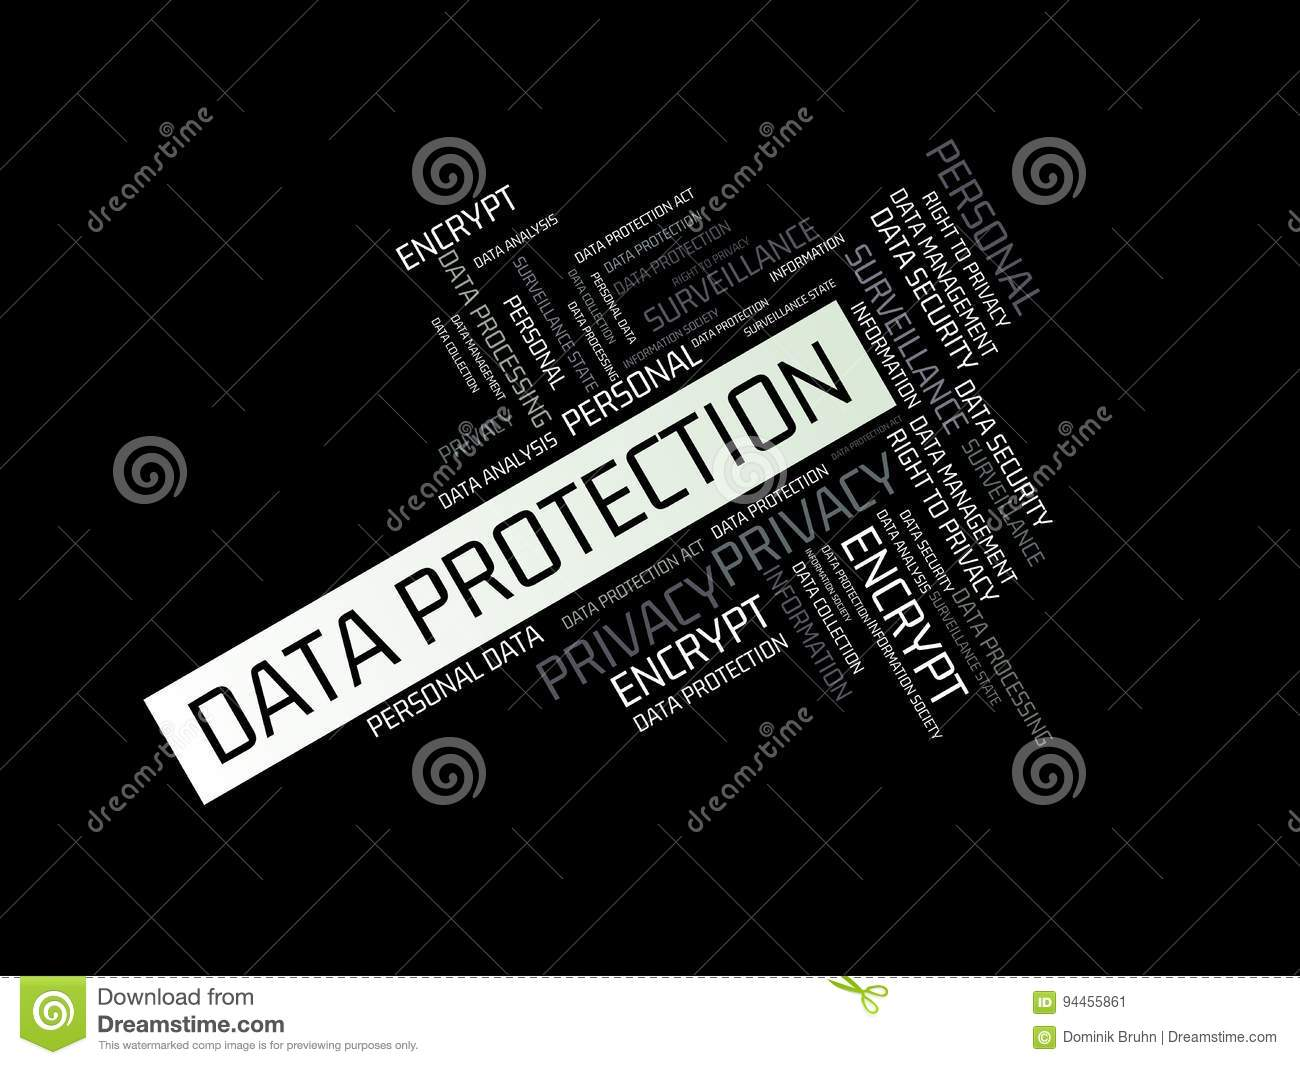 Data Protection Image With Wordsociated With The Topic Data Protection Word Cloud Cube Letter Image Il Ration